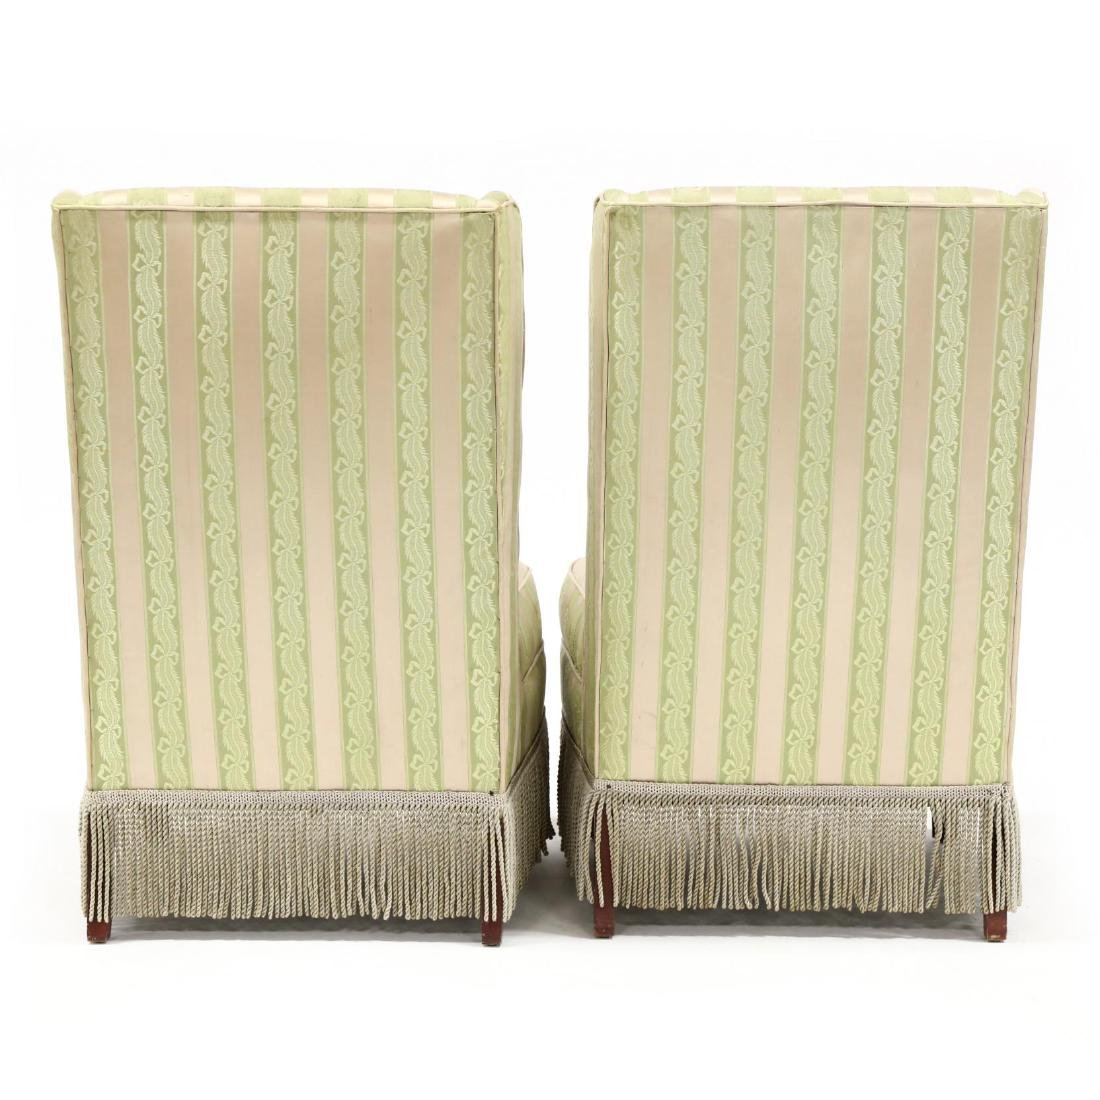 Pair of Vintage Silk Upholstered Slipper Chairs - 3